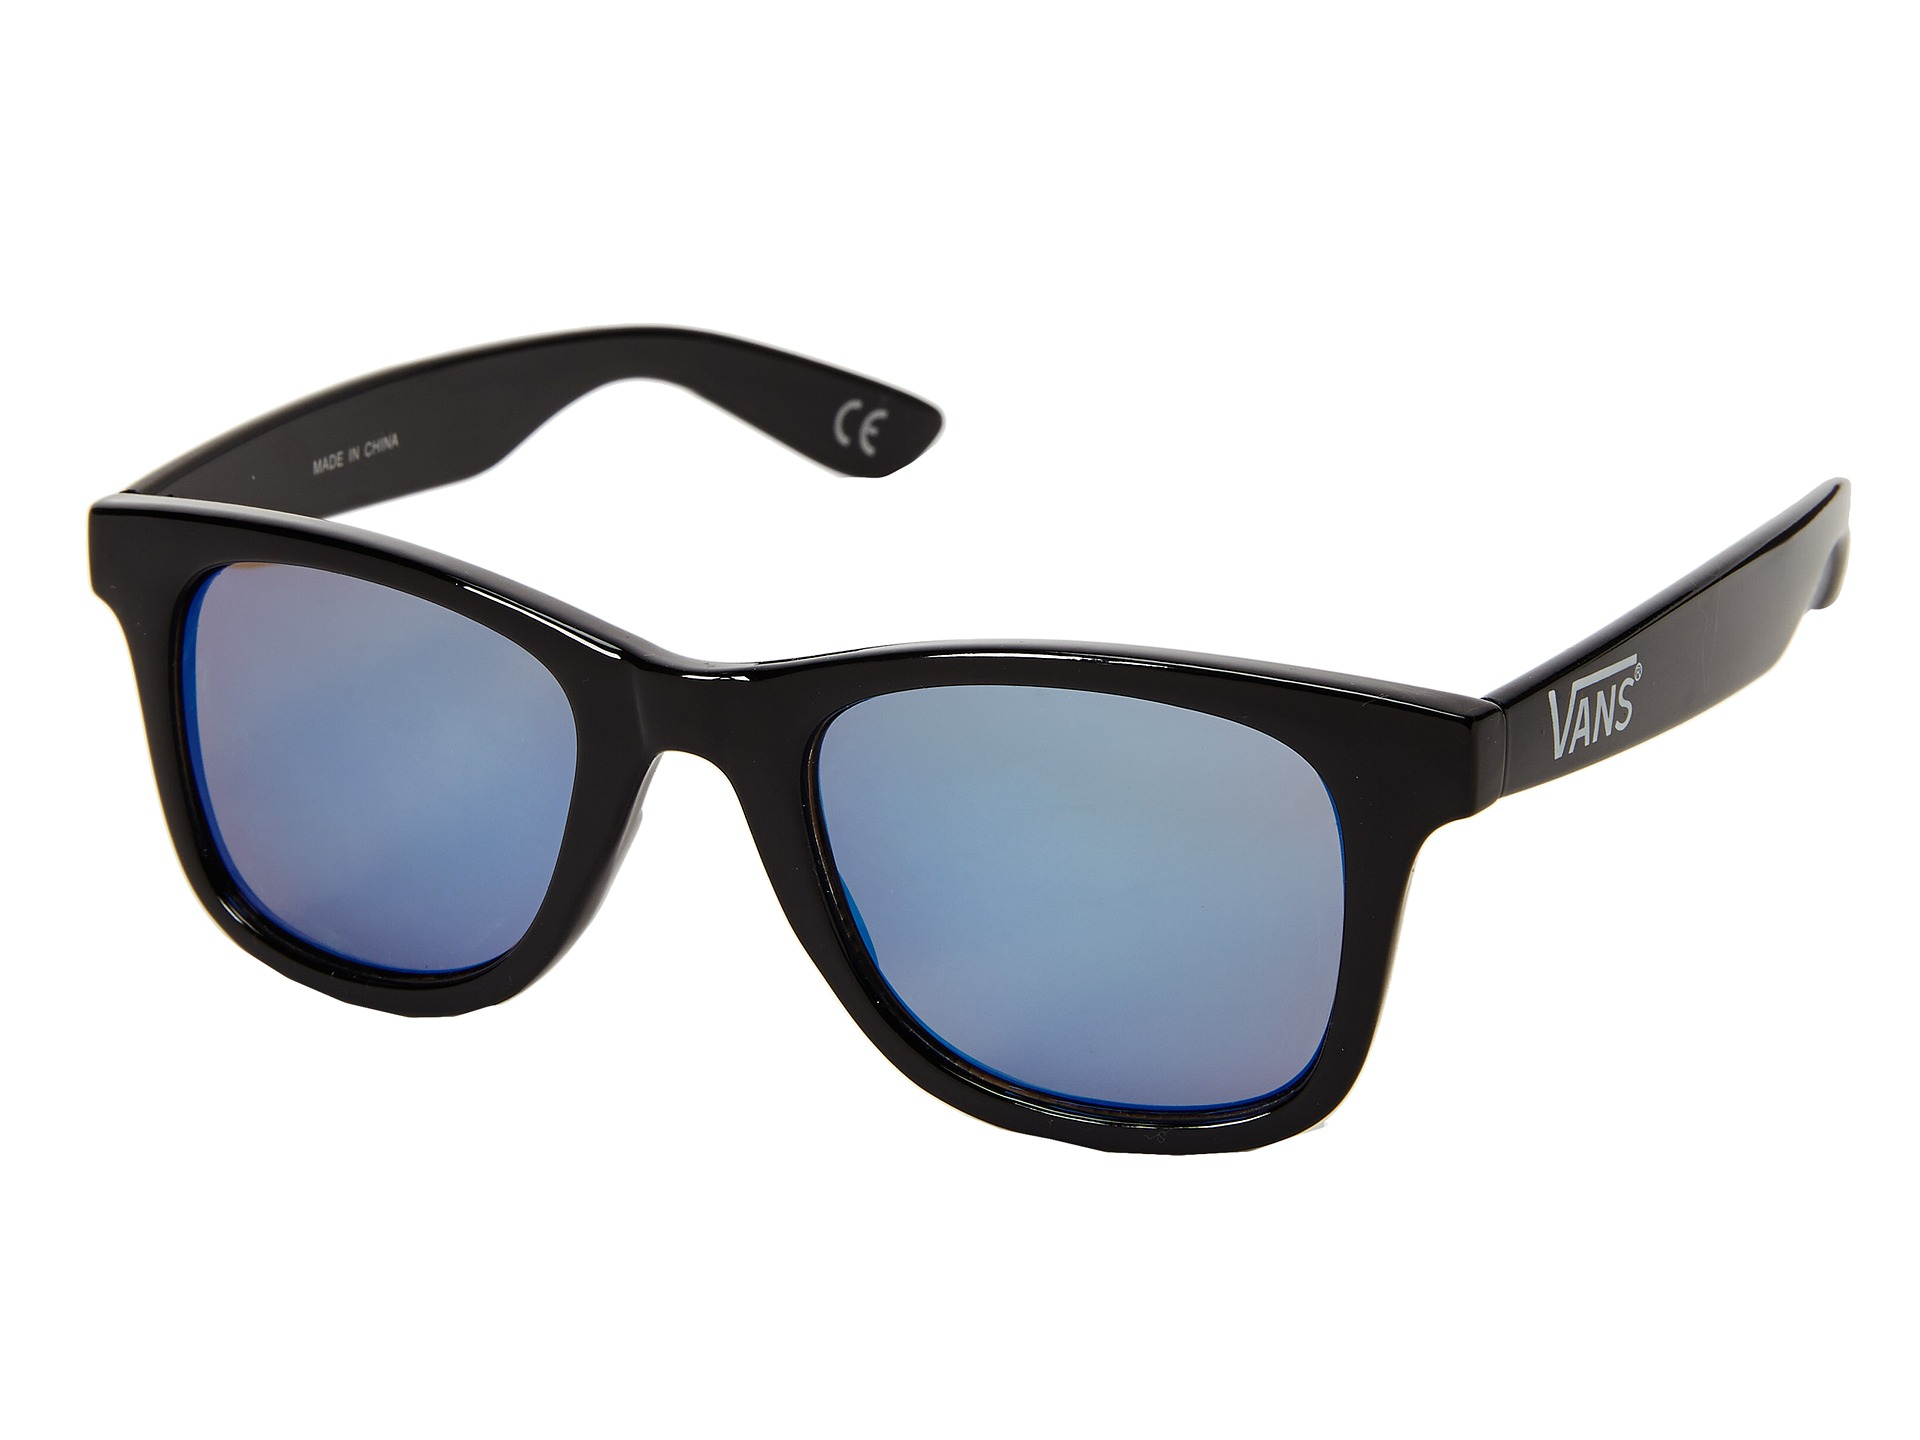 vans janelle sunglasses zappos free shipping